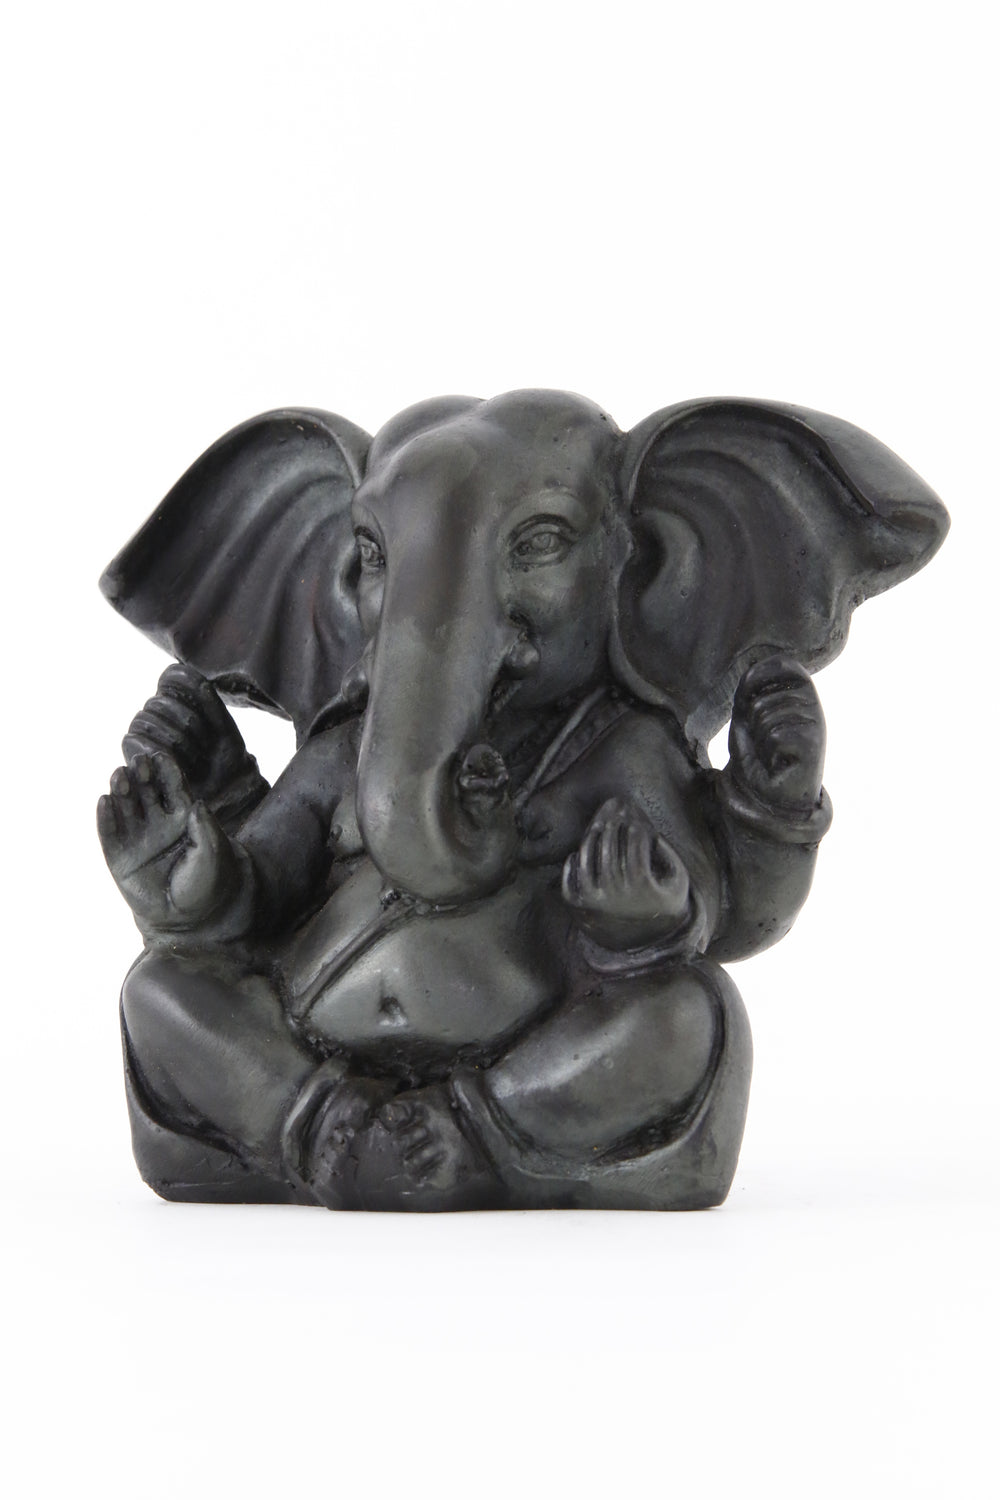 GANESHA BALD POINTY EARS STATUE DARK LARGE SIDE  VIEW